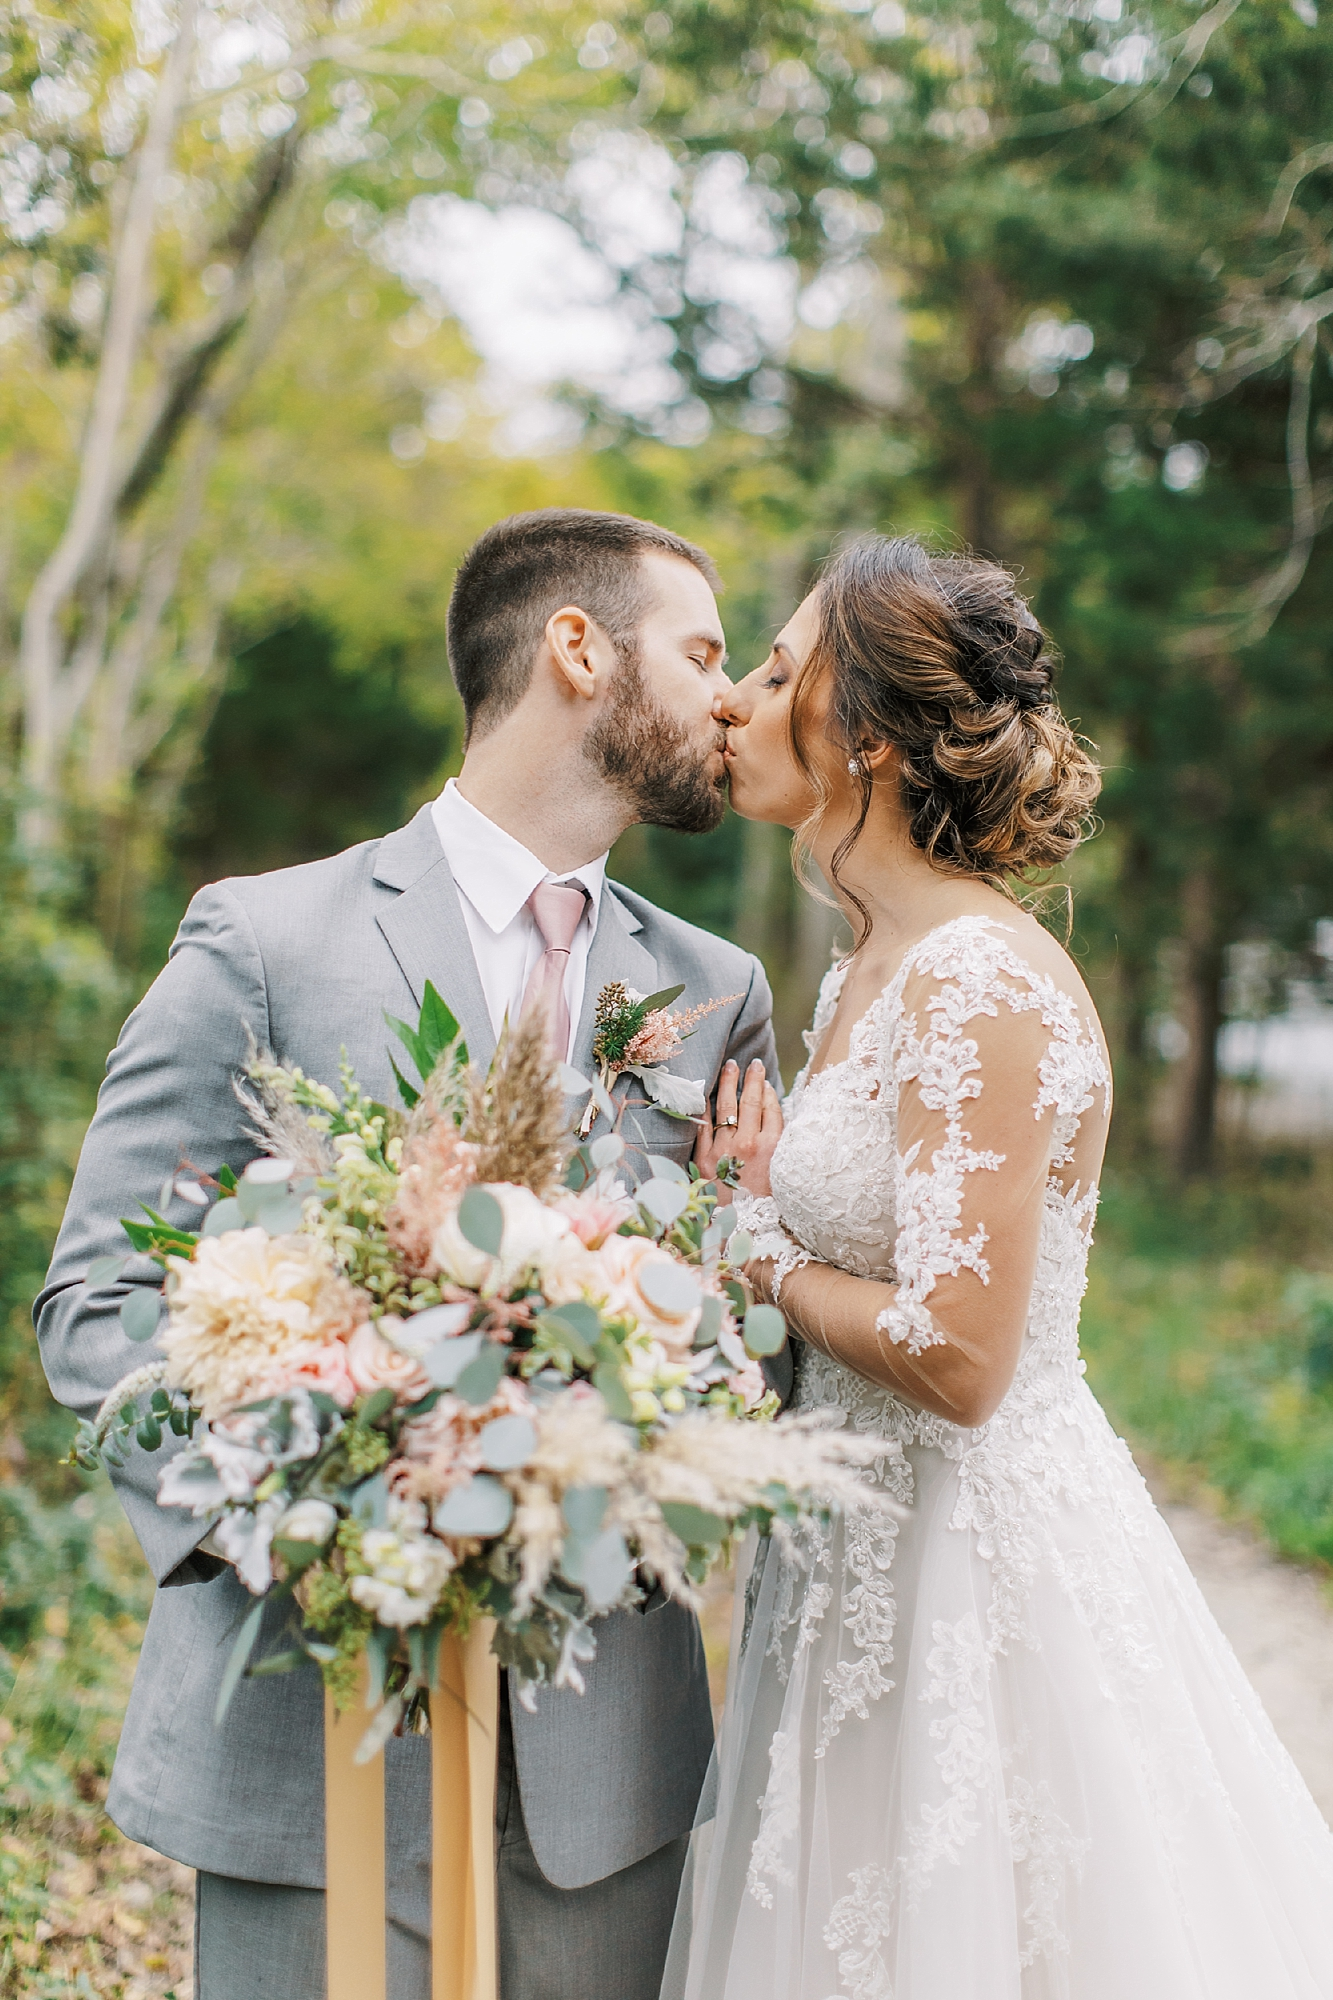 Sweet Garden Wedding Photography Abbie Holmes Estate in Cape May NJ by Magdalena Studios 0049